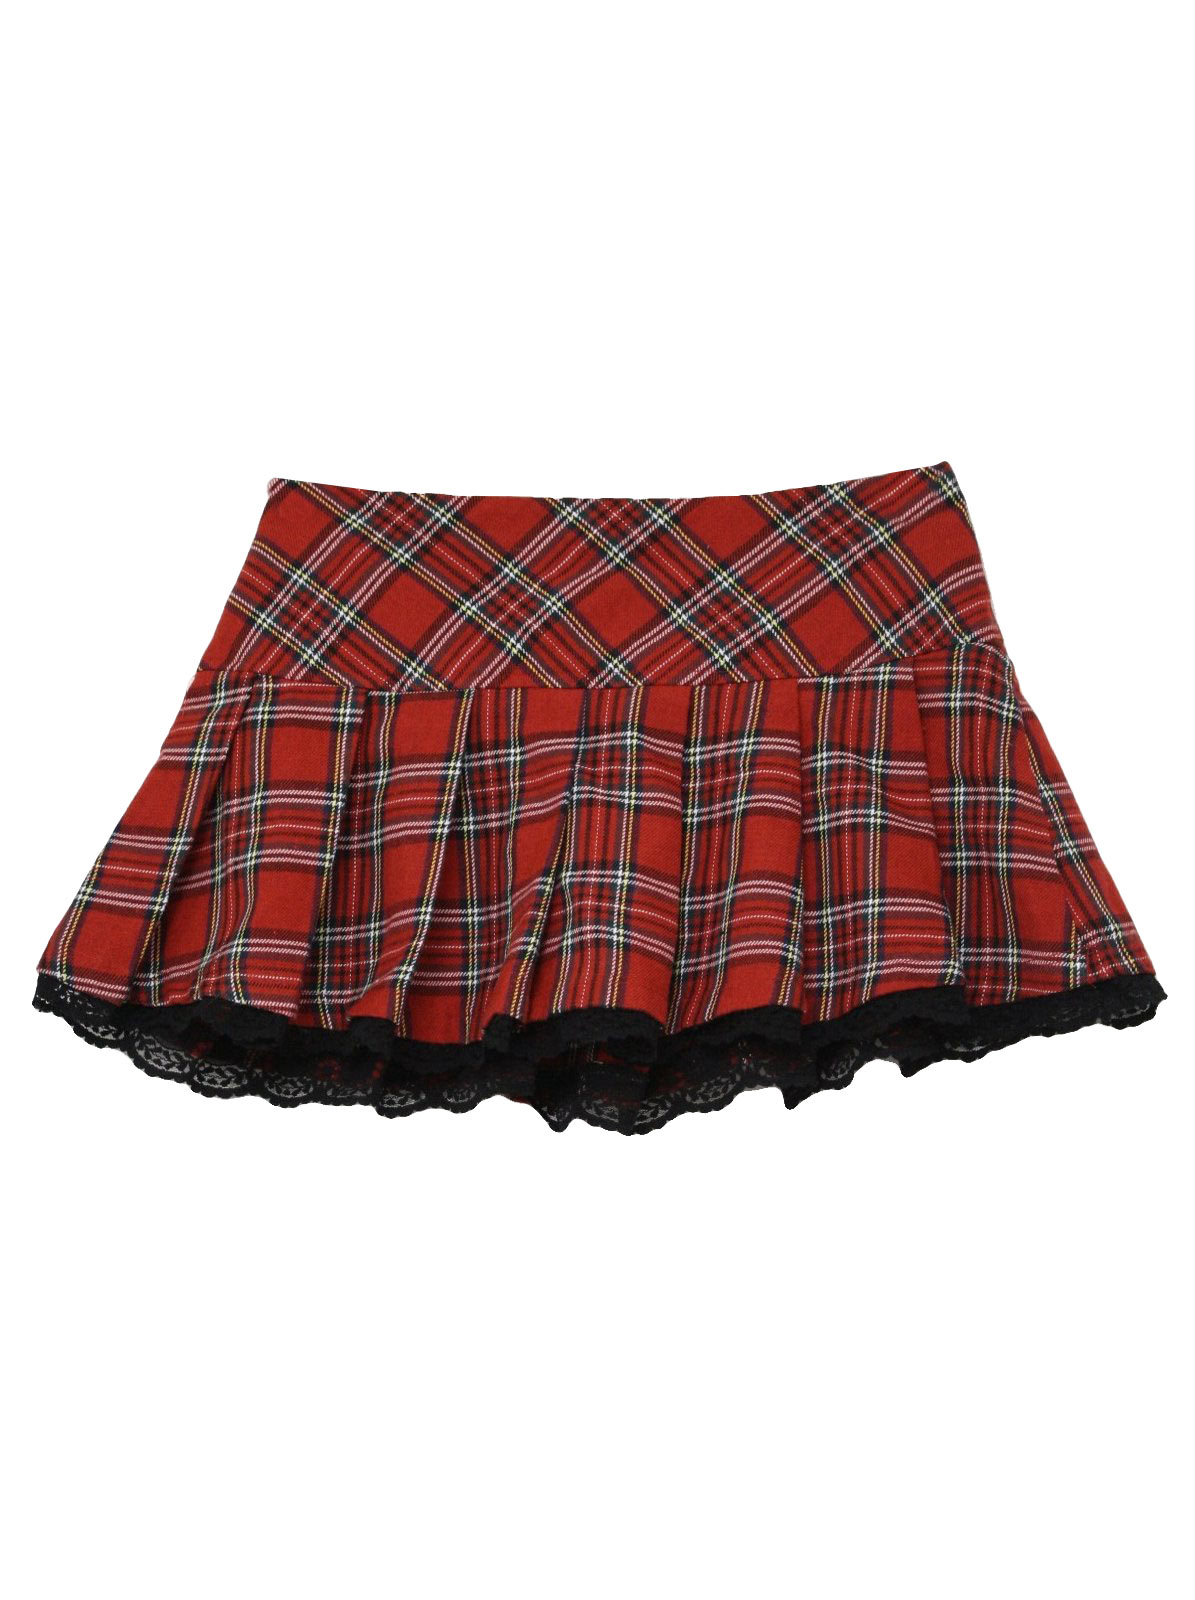 dress - Red and plaid black mini skirt video